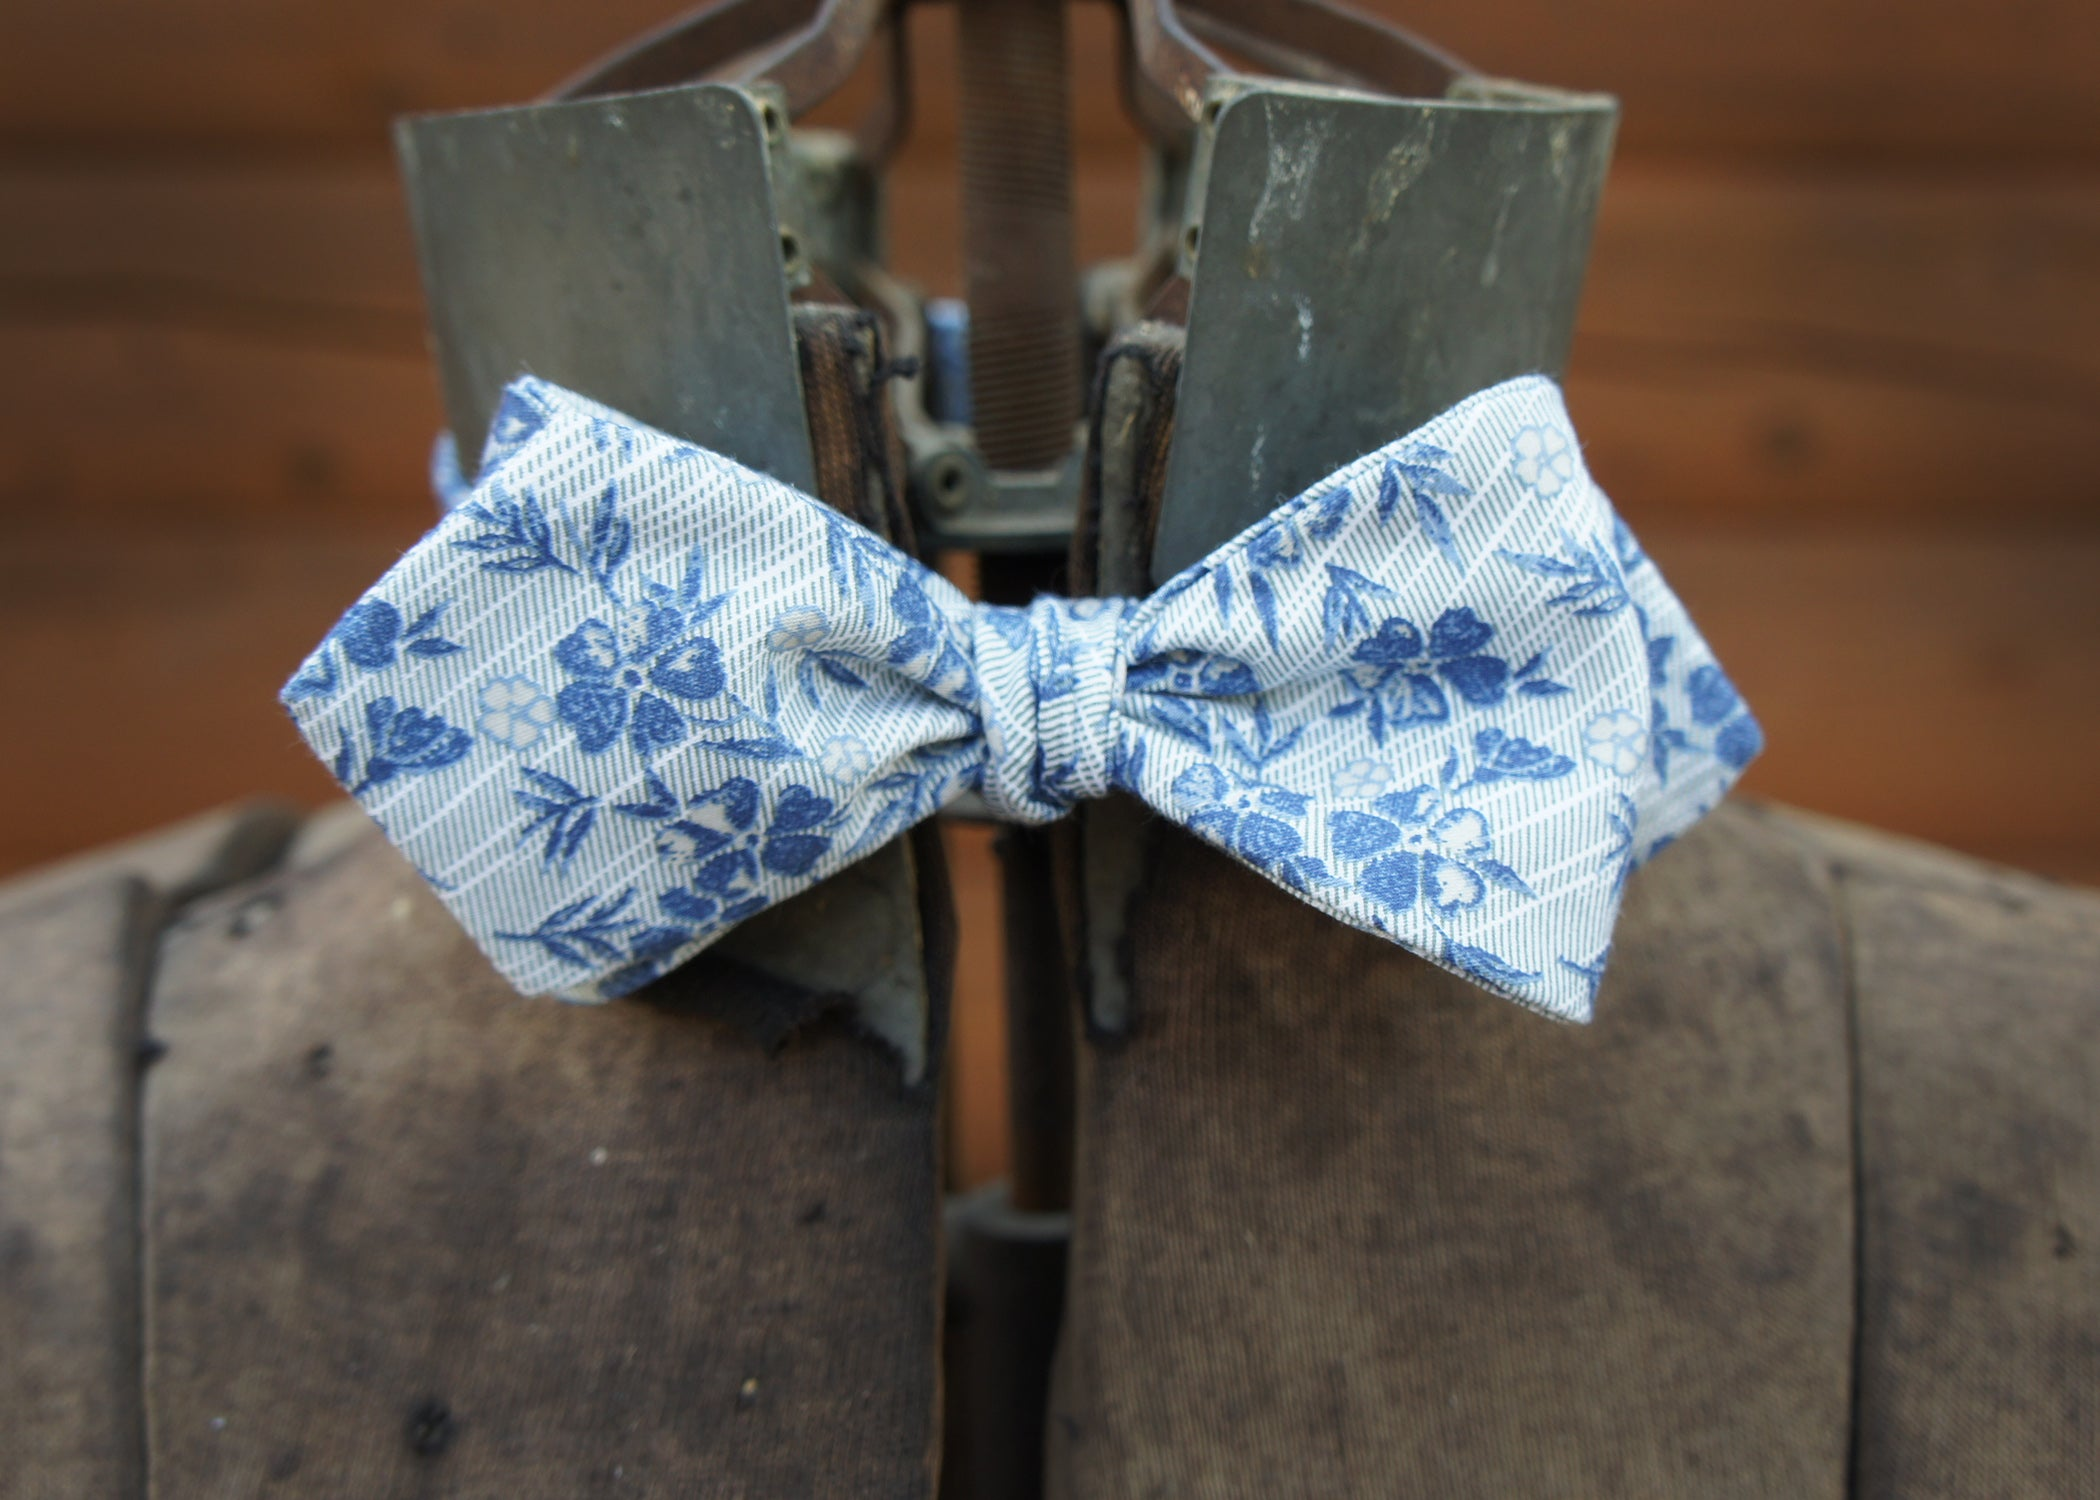 Light Blue with Blue Floral Diamond Bow Tie